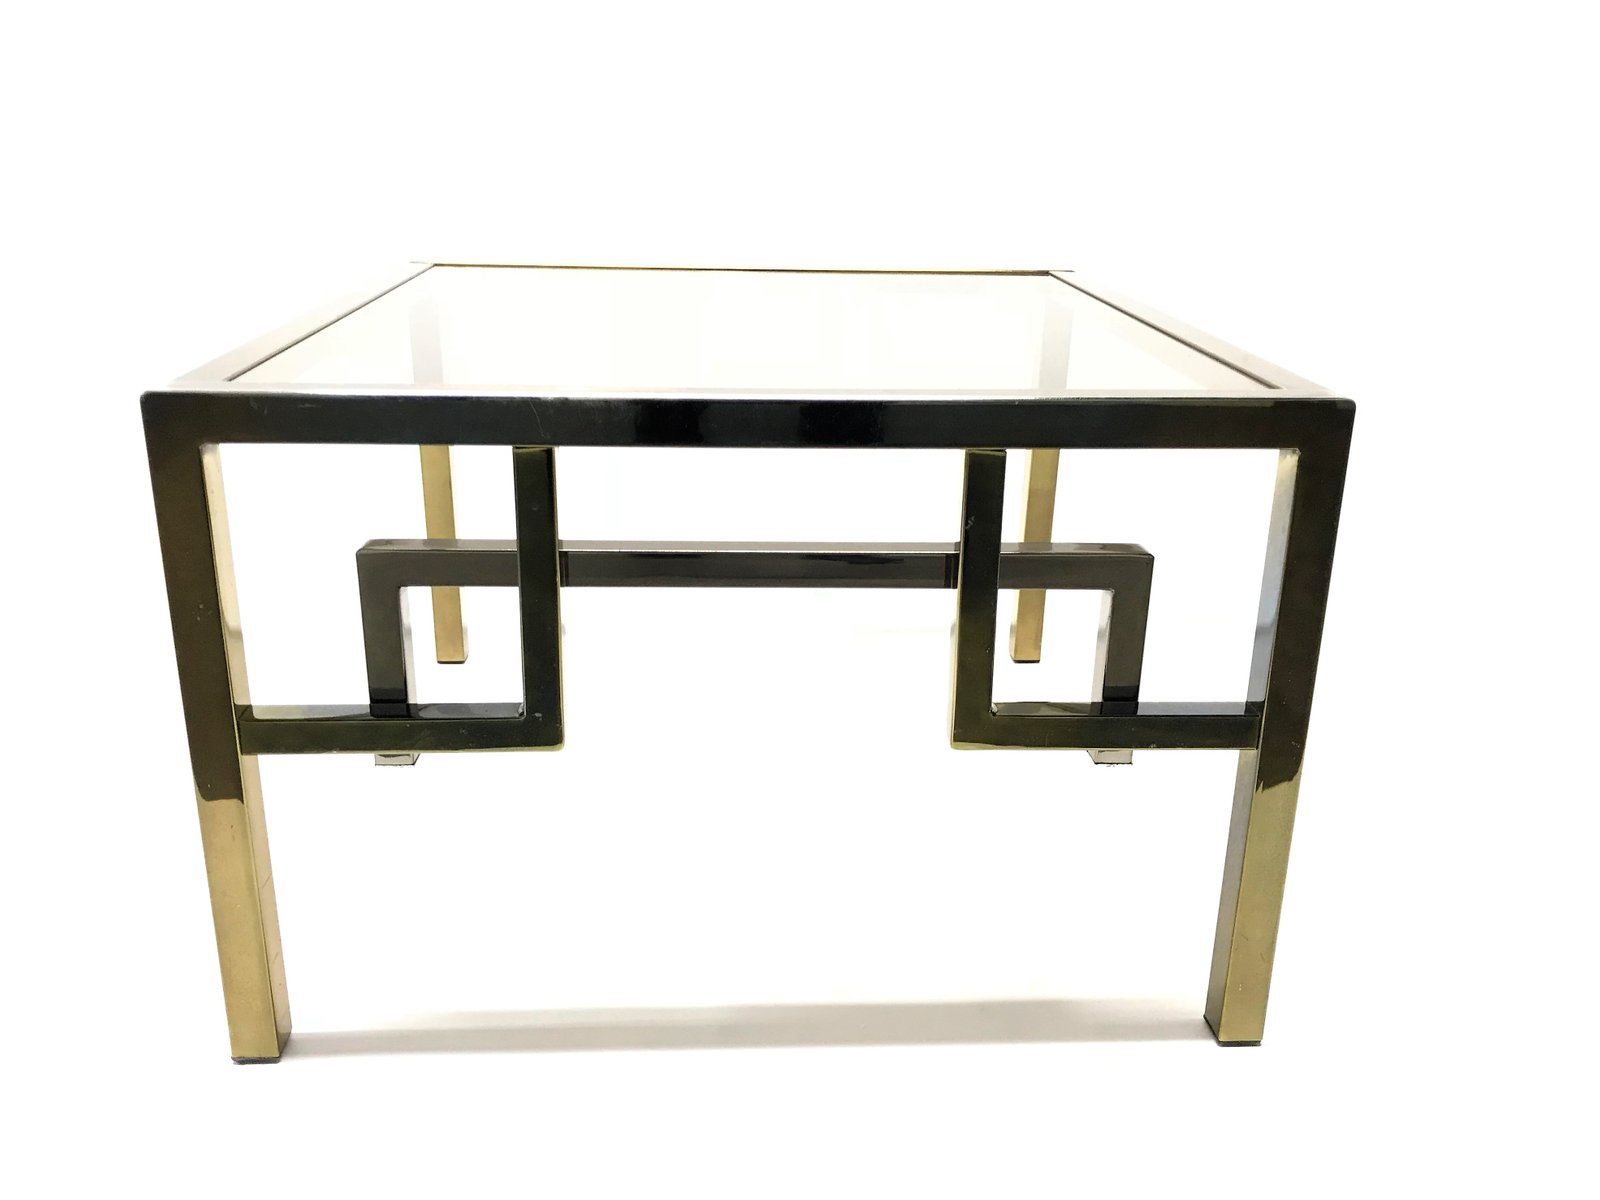 Vintage Brass Coffee Table 1970s Bei Pamono Kaufen